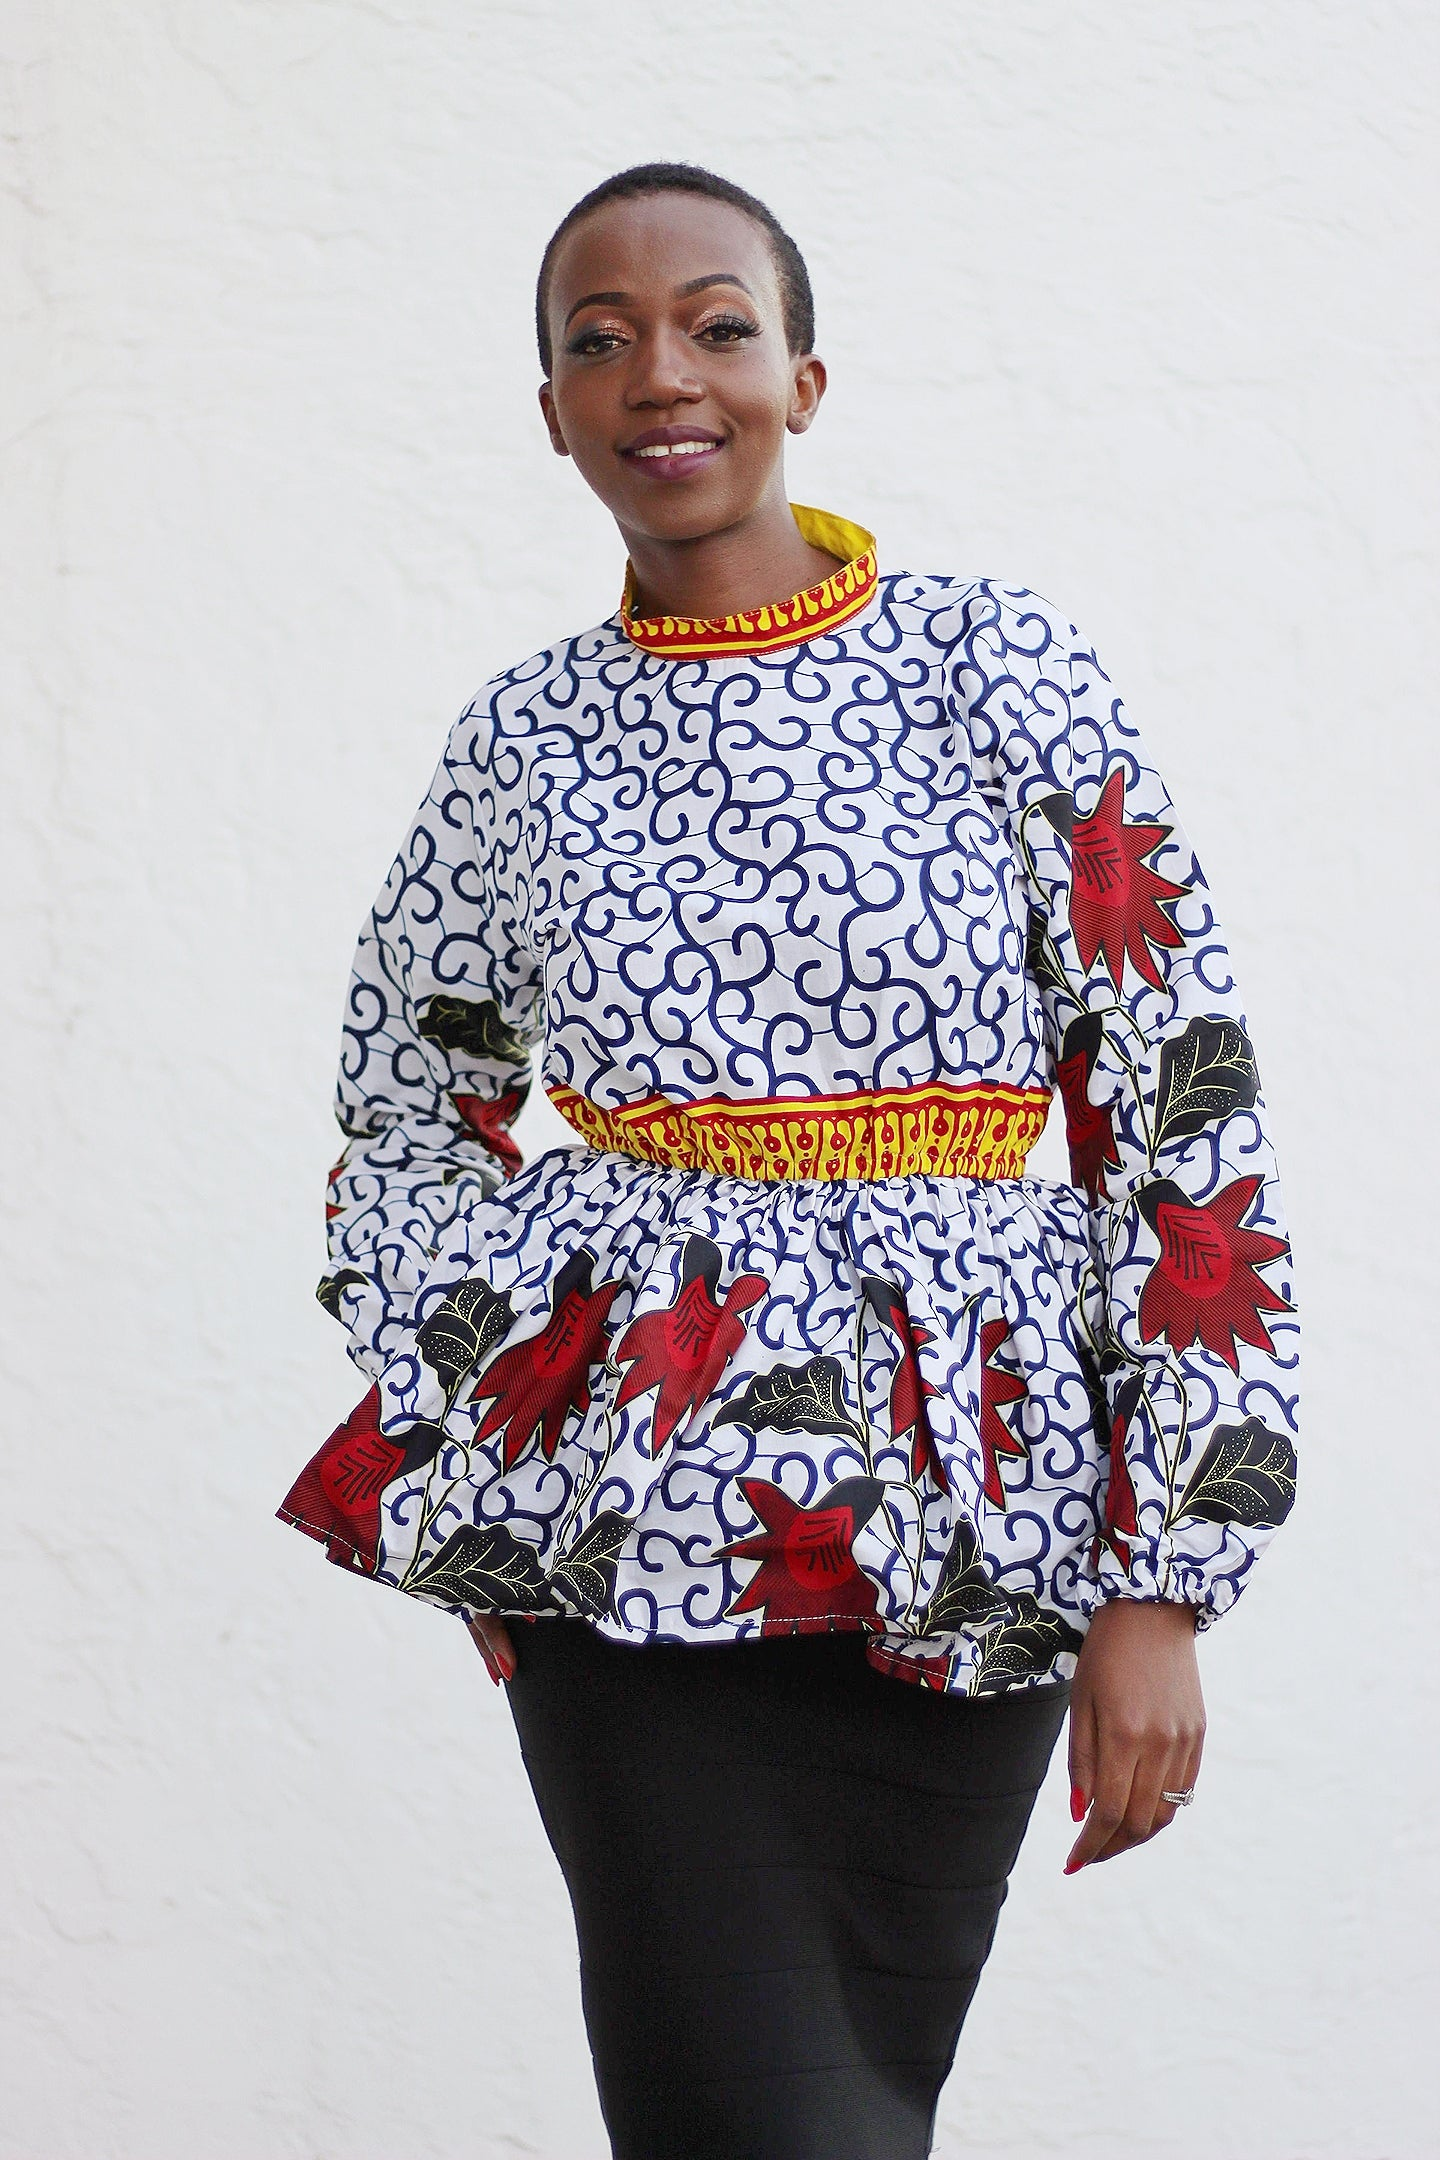 African Print Long Sleeved PeplumTop - White/Red/Black Floral Print - Africas Closet